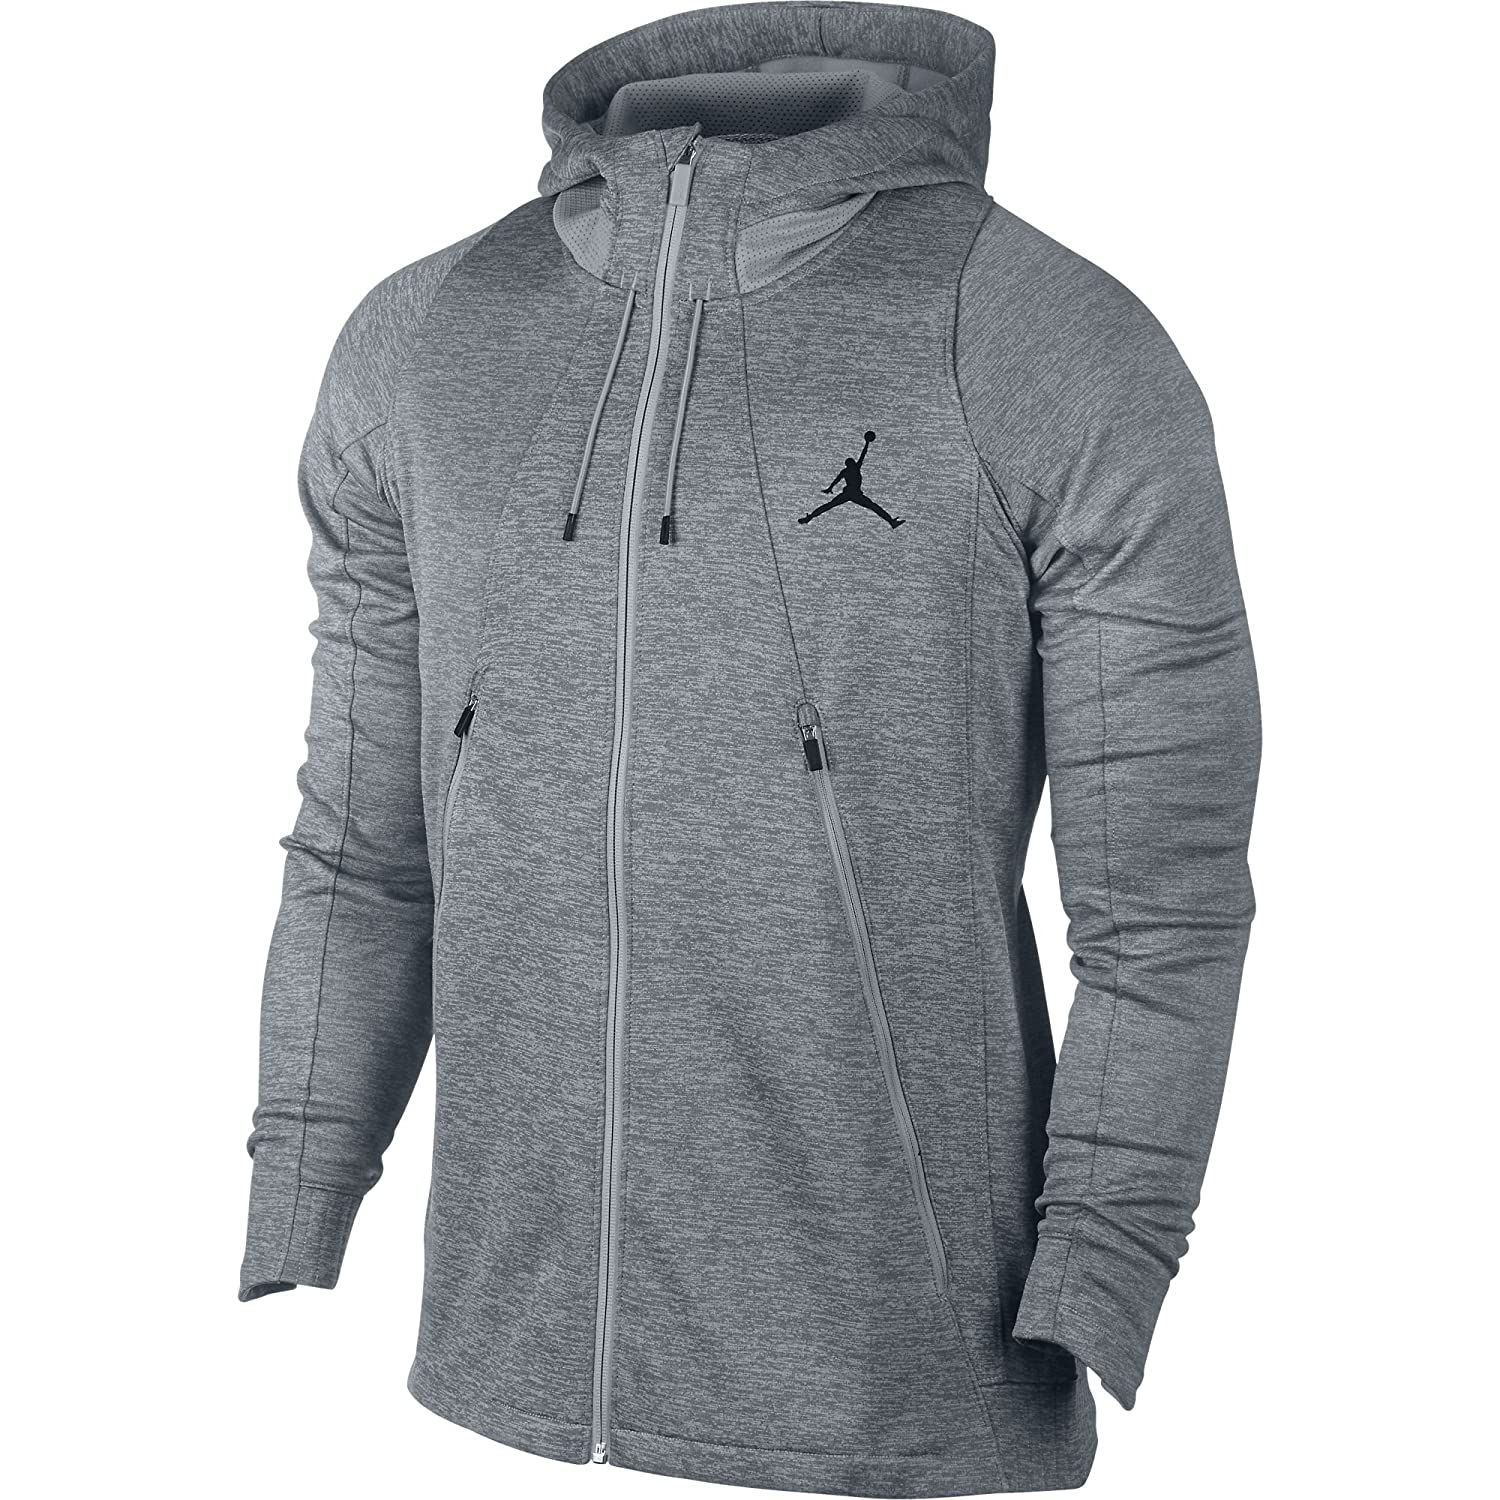 17ba2ba4cc1875 Jordan Flight Fleece Full-Zip Men s Hoodie Athletic Grey Grey 688525-012  (Size L)  Amazon.co.uk  Sports   Outdoors